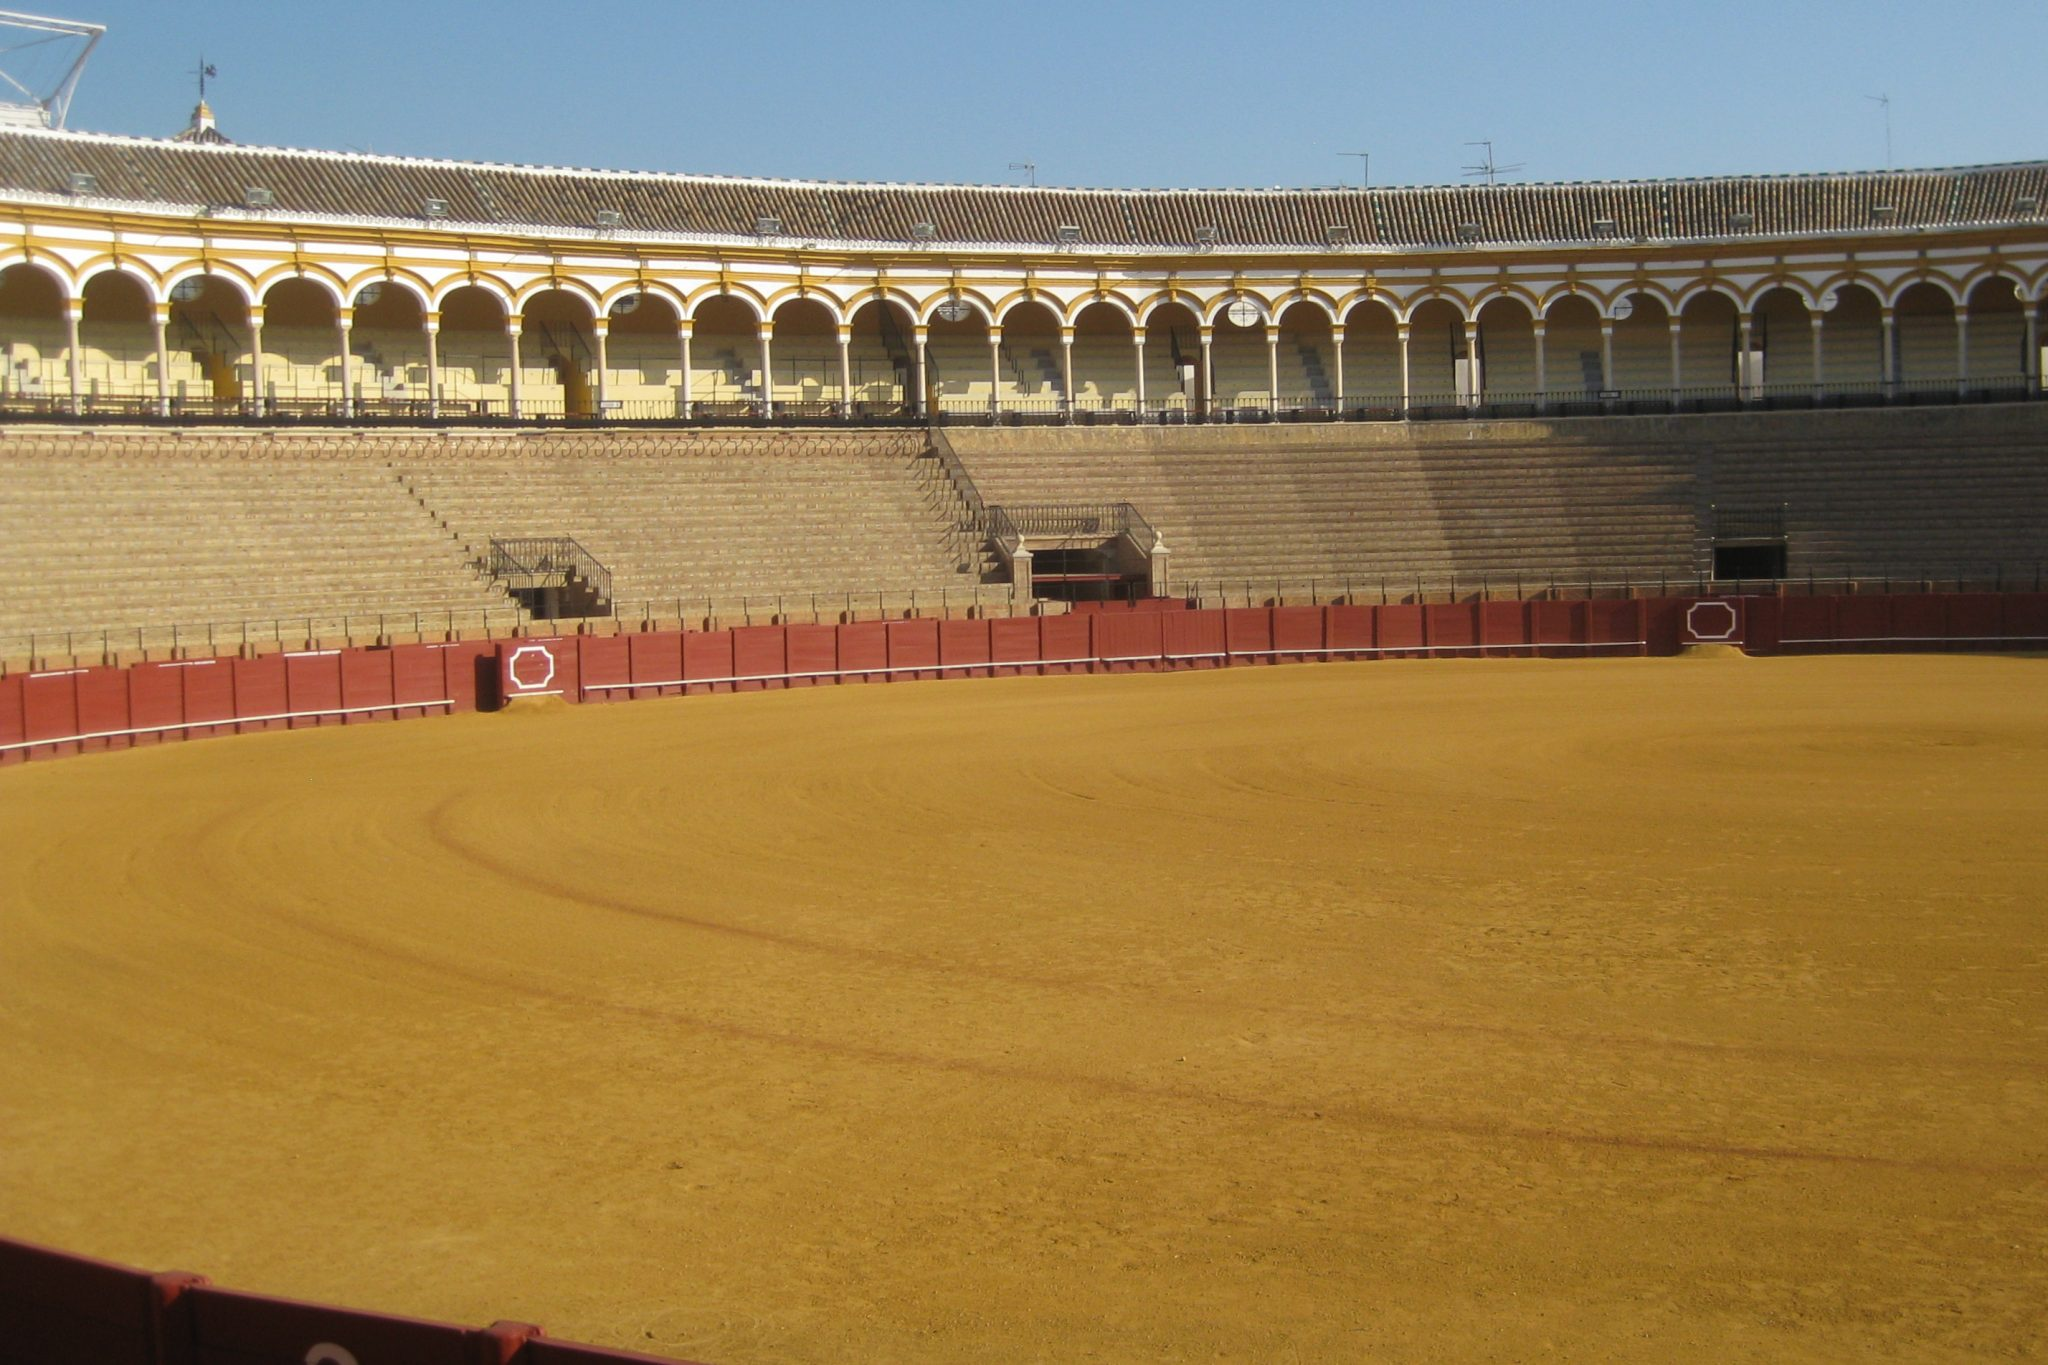 Sevilla bullfighting arena